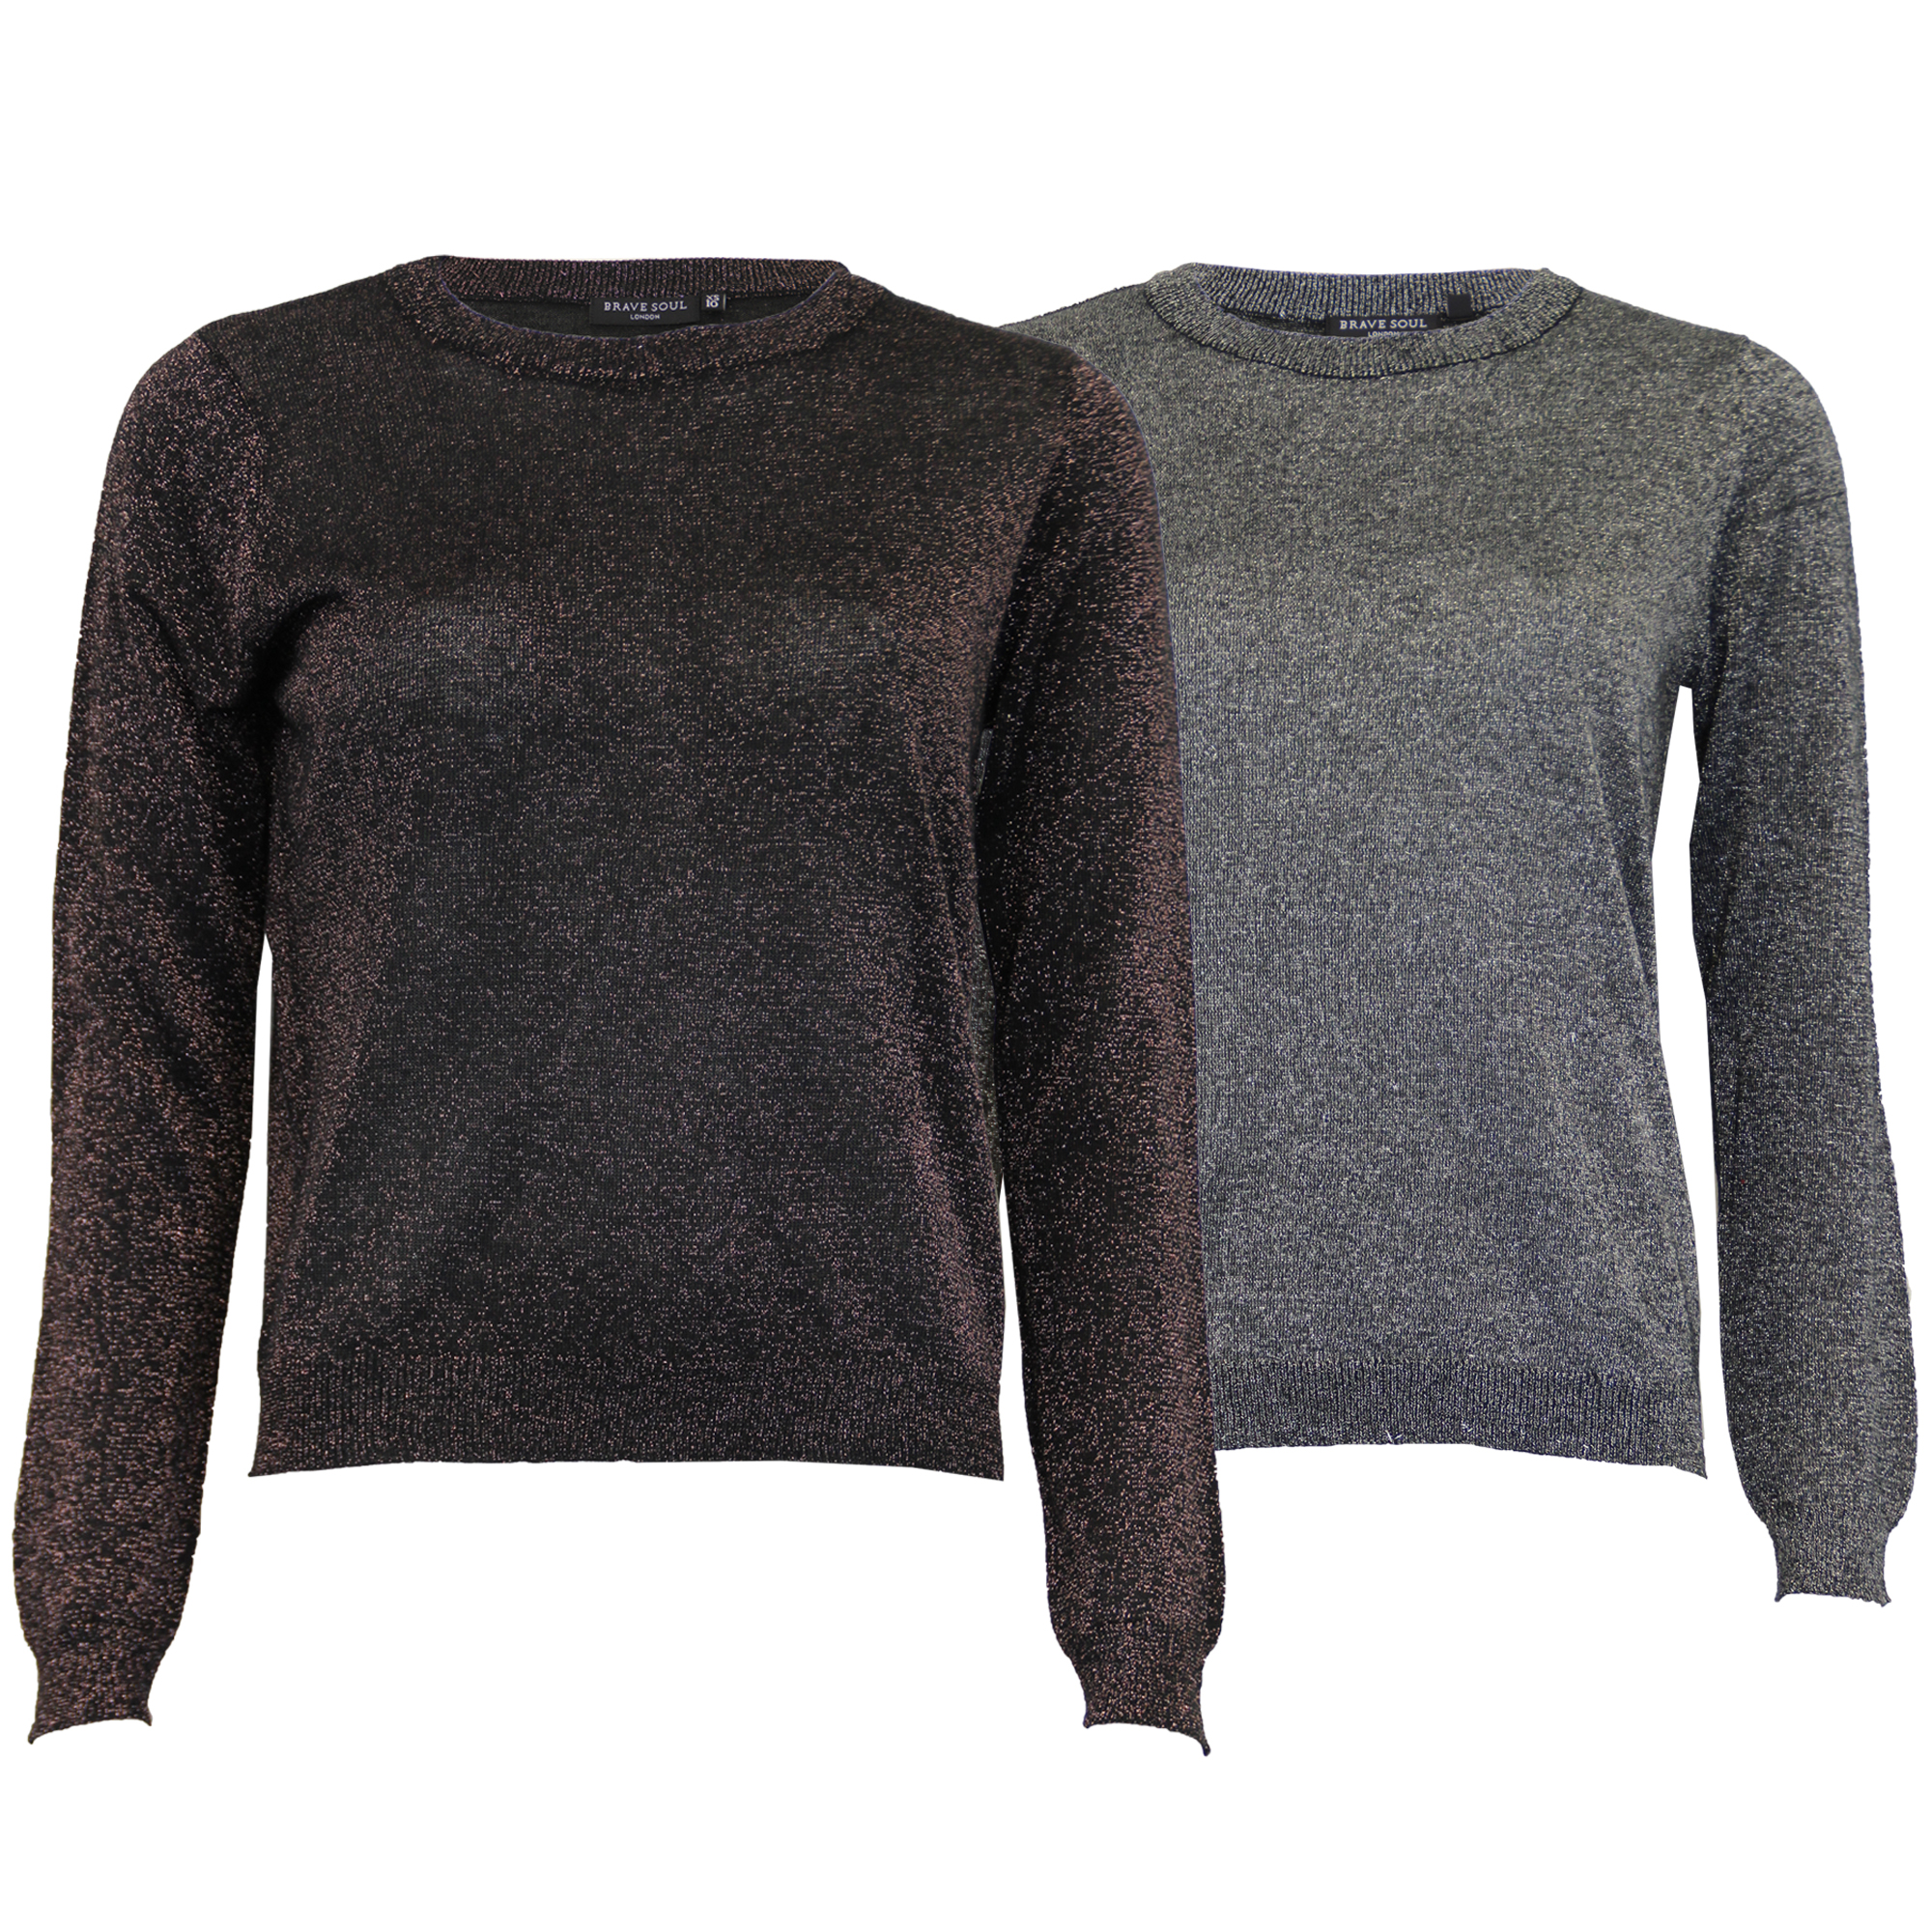 5accac072f8 Details about Ladies Jumper Brave Soul Womens Knitted Sweater Pullover  Metallic Yarn Winter